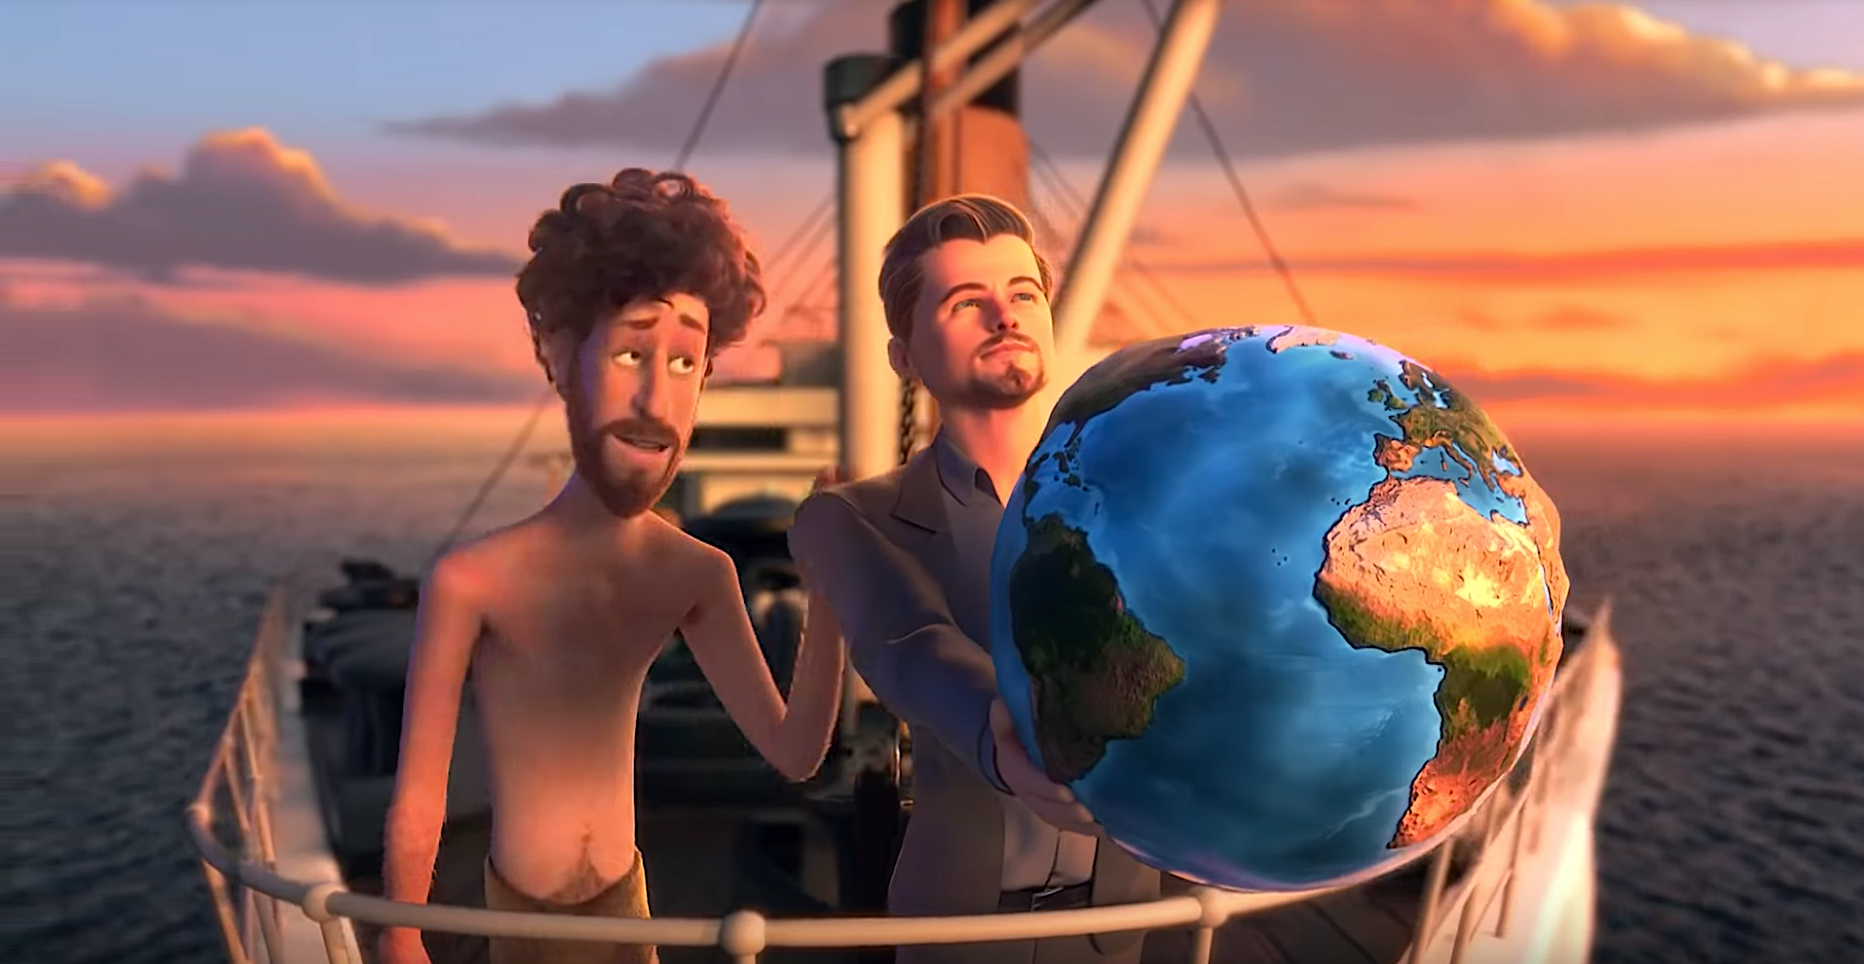 Lil Dicky Curated an All-Star Celebrity Charity Song with Leonardo DiCaprio That I'll Be Singing All Day